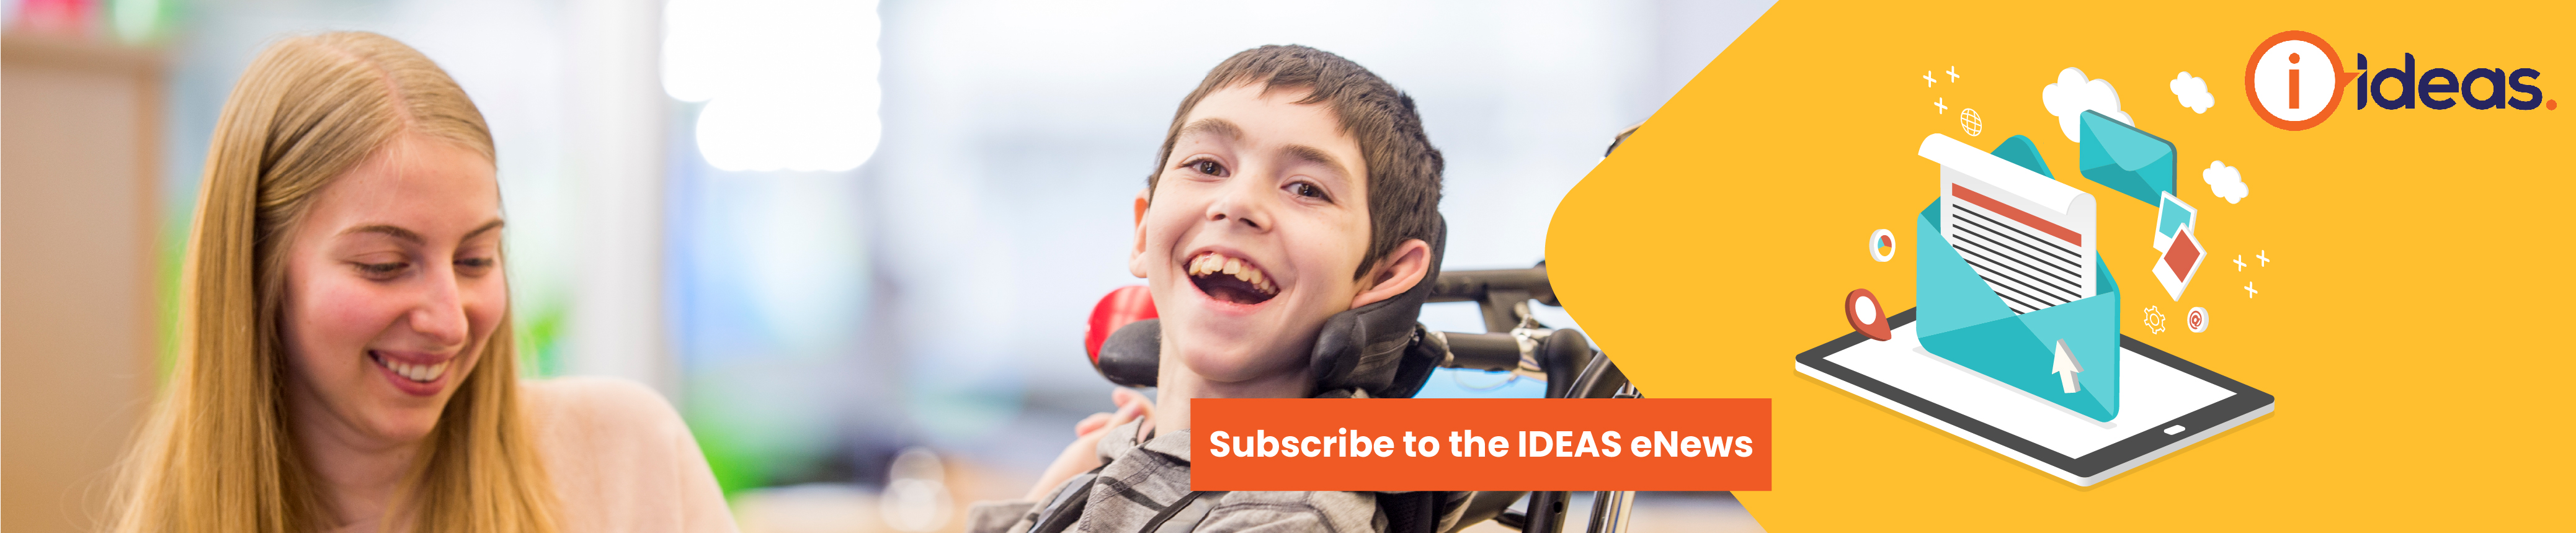 Subscribe to IDEAS eNews